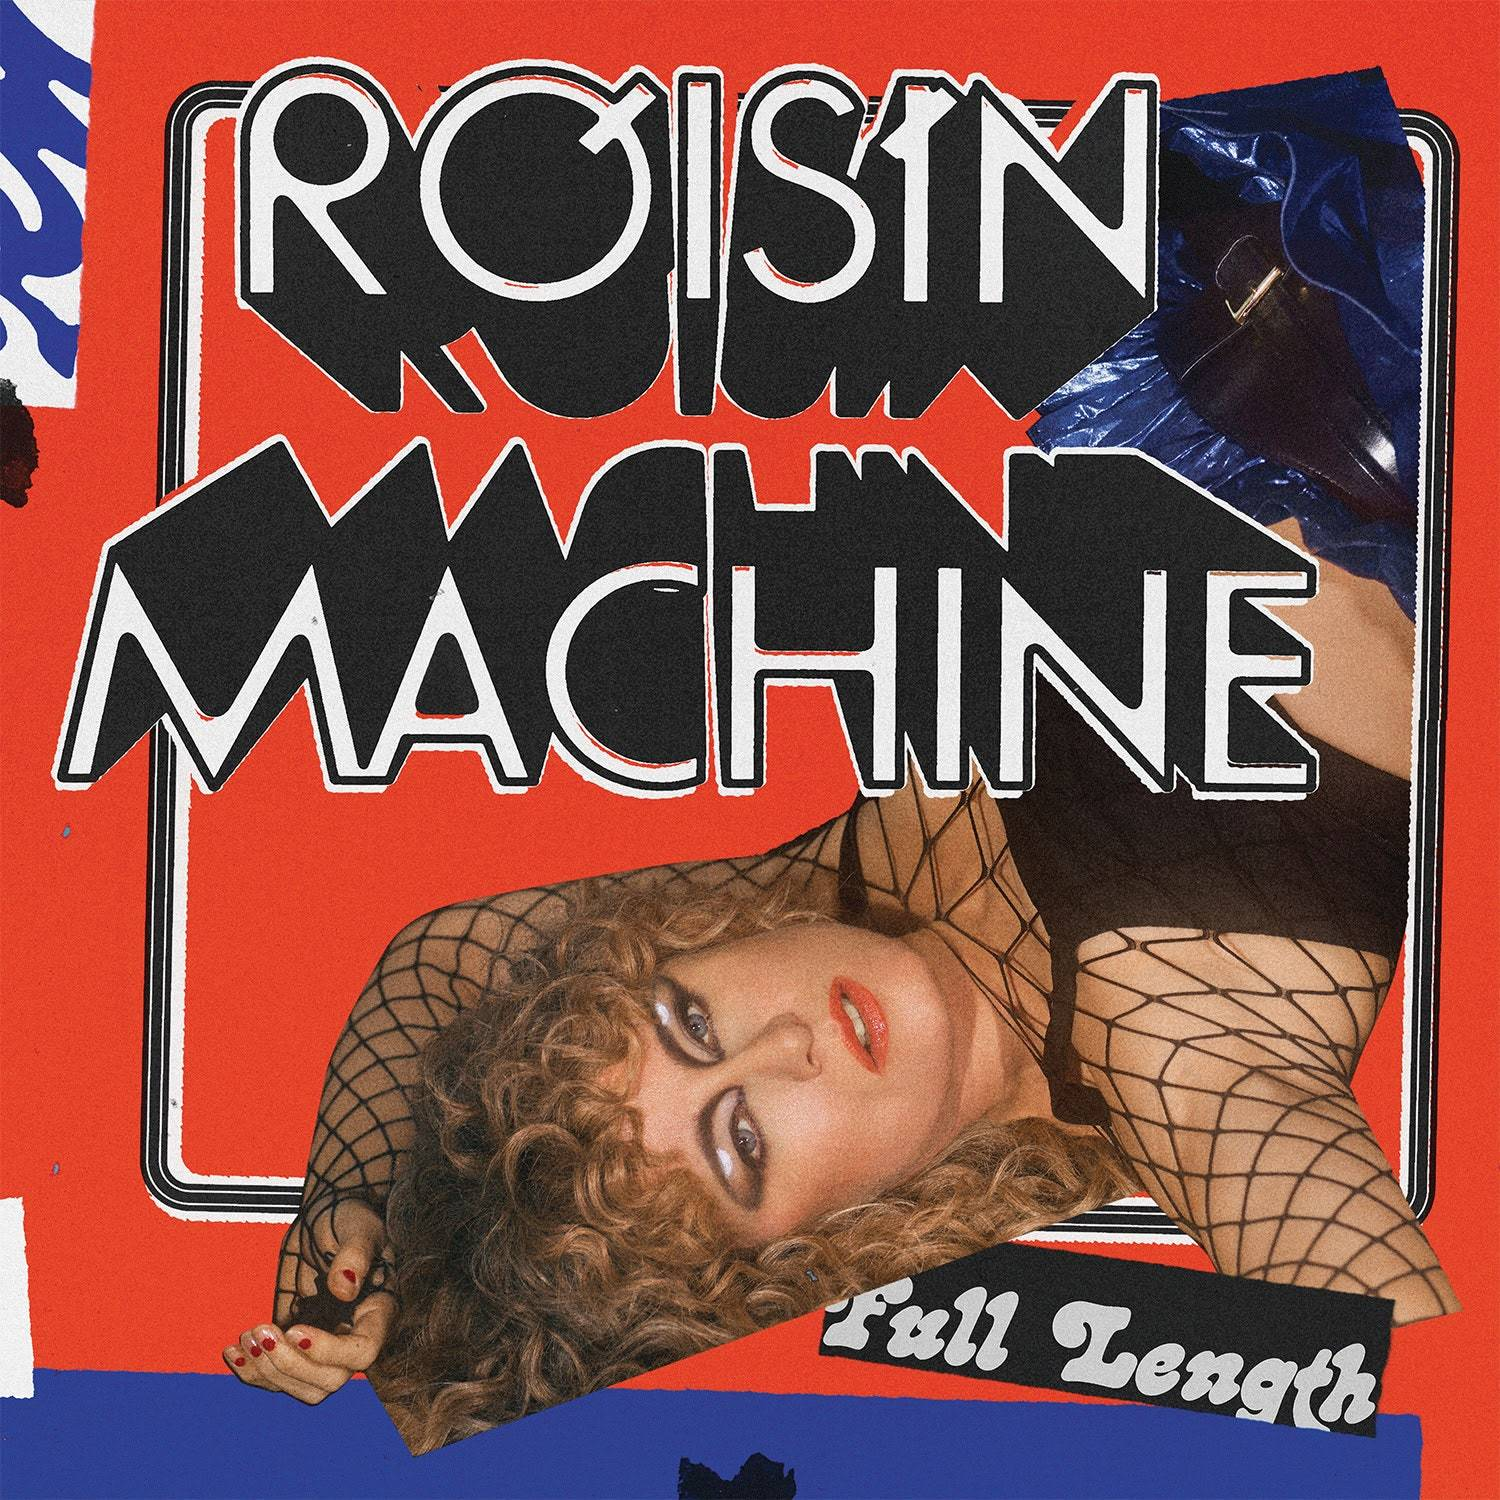 Roisin Murphy Roisin Machine